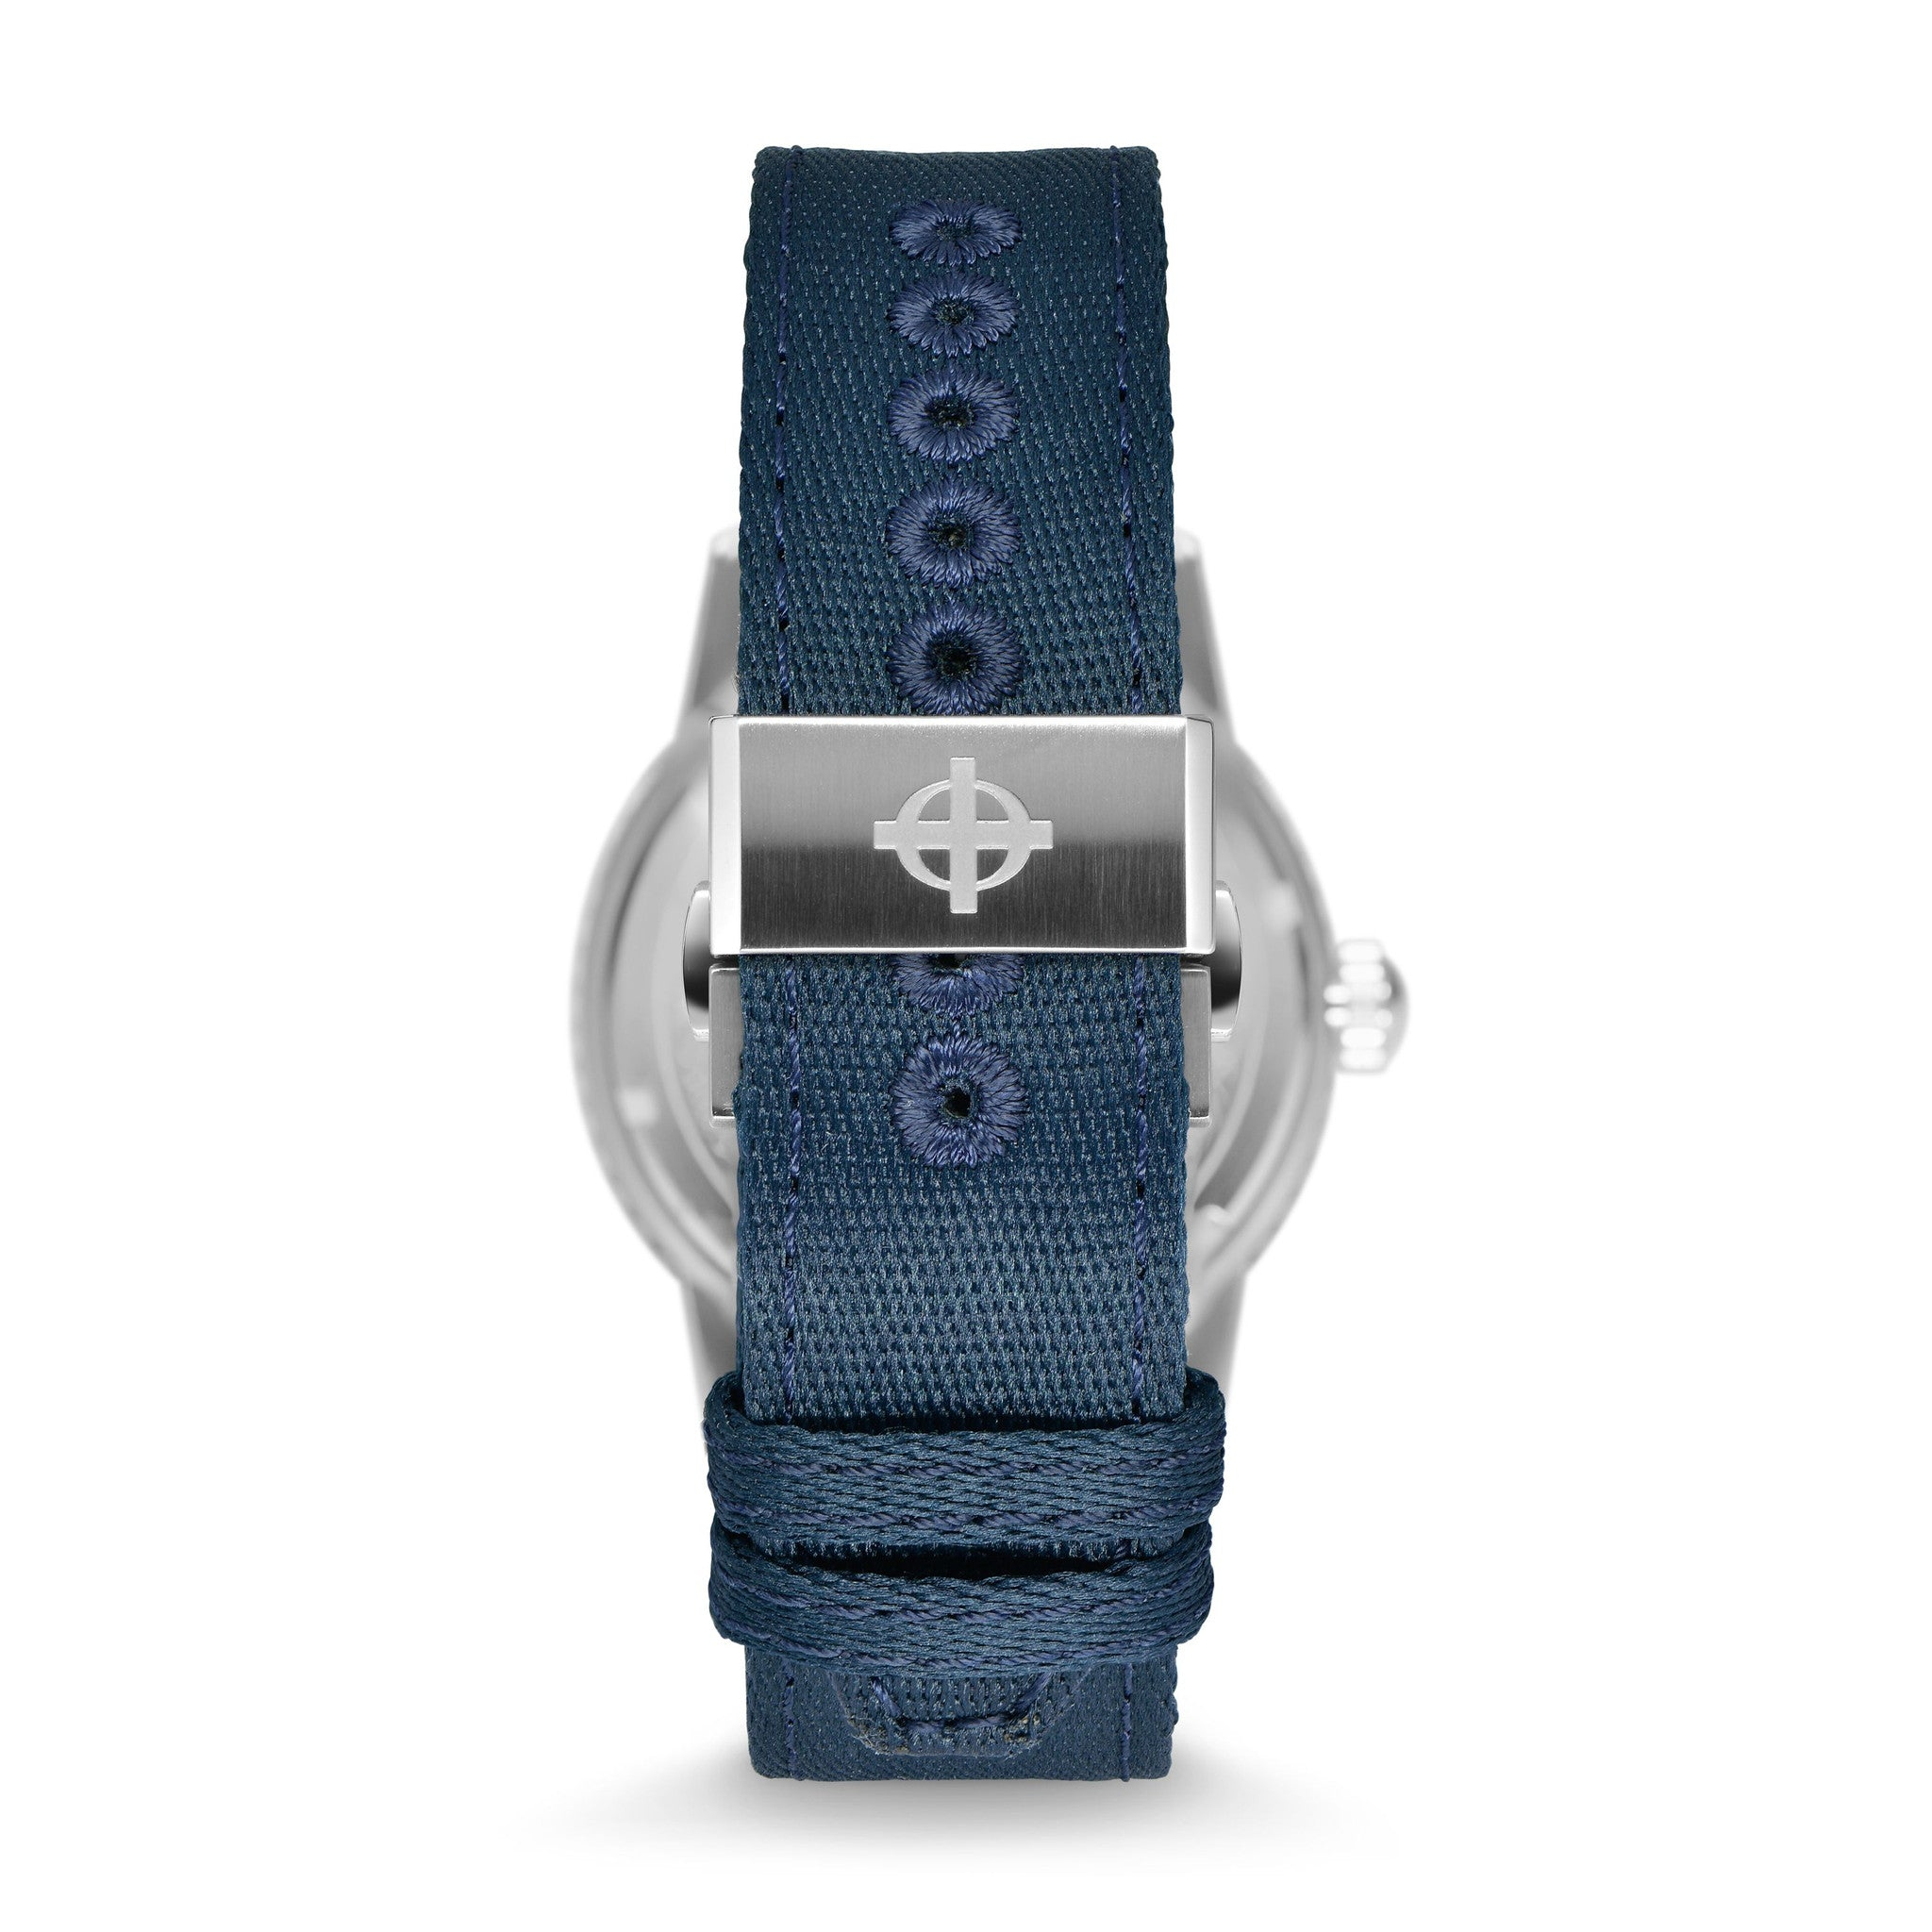 SUPER SEA WOLF AUTOMATIC BLUE FABRIC WATCH